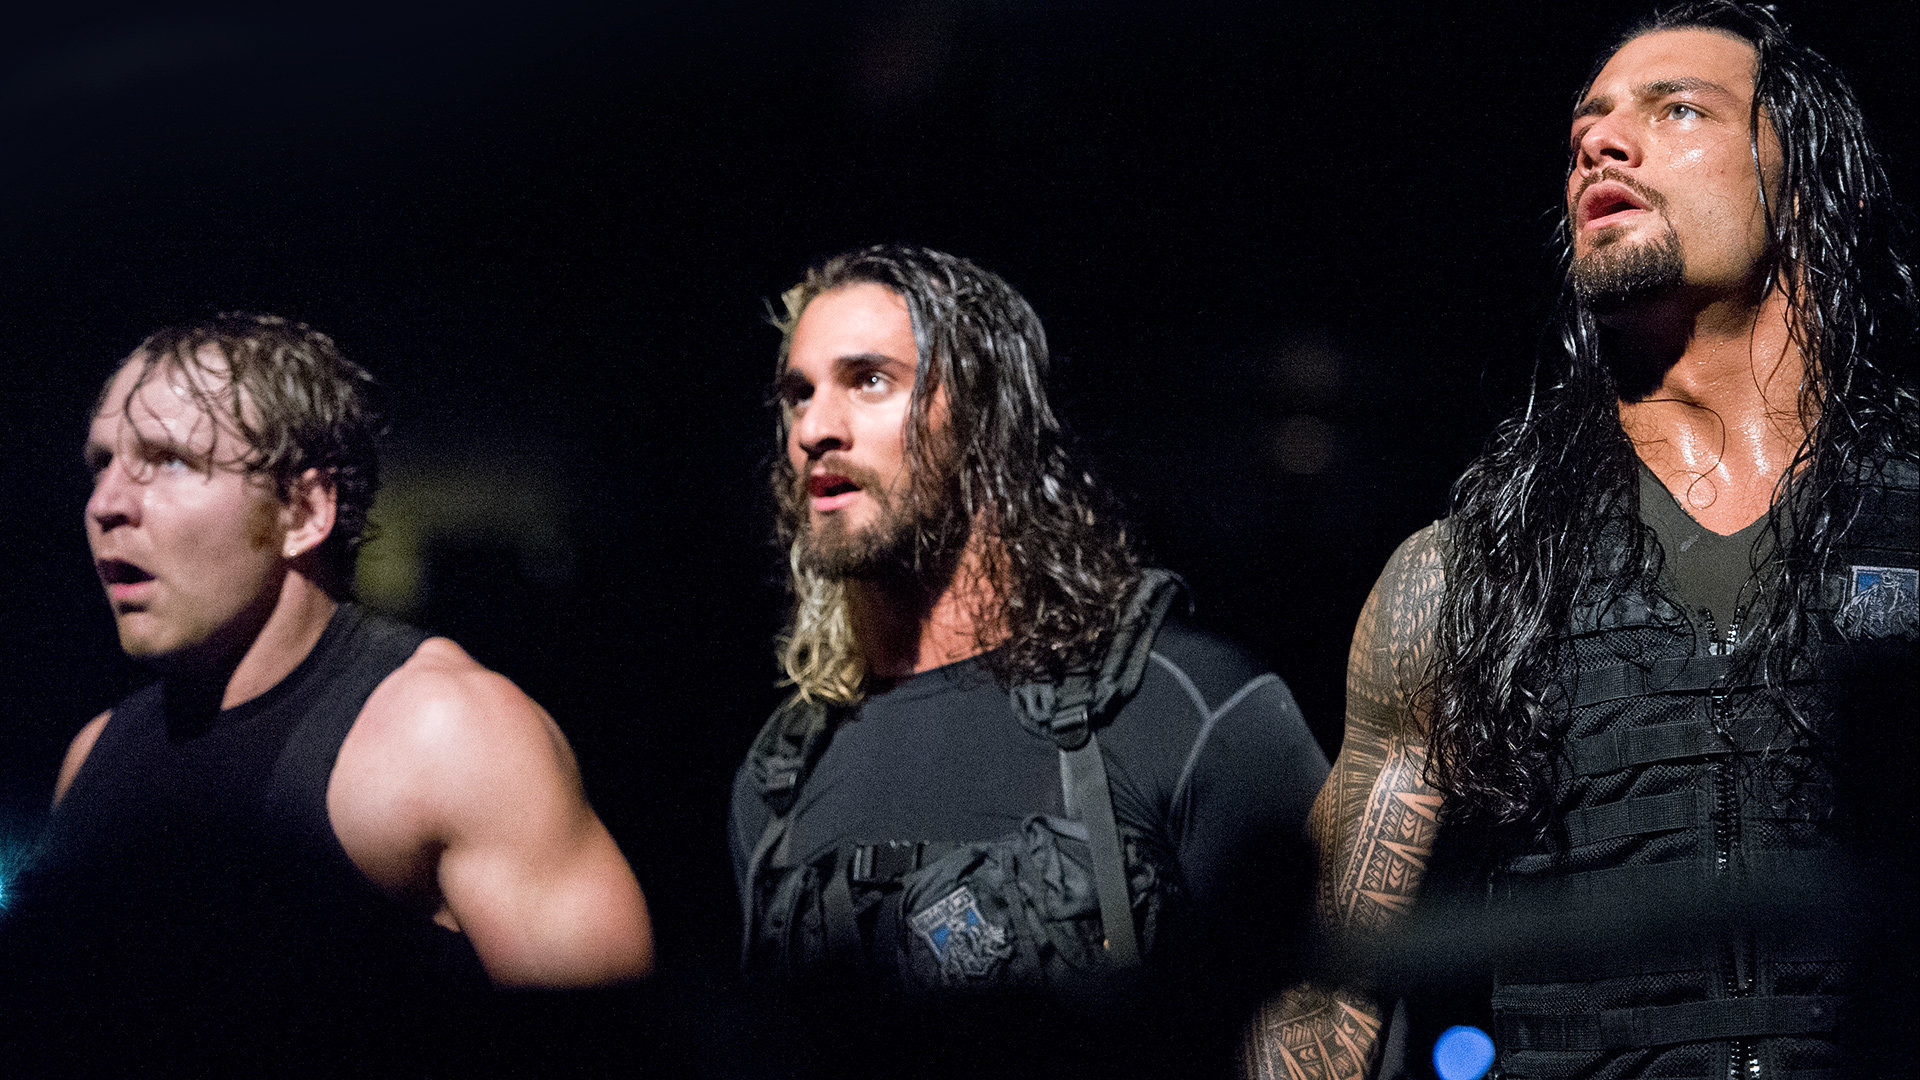 Wwe the shield wallpaper 82 images - Download pictures of the shield wwe ...